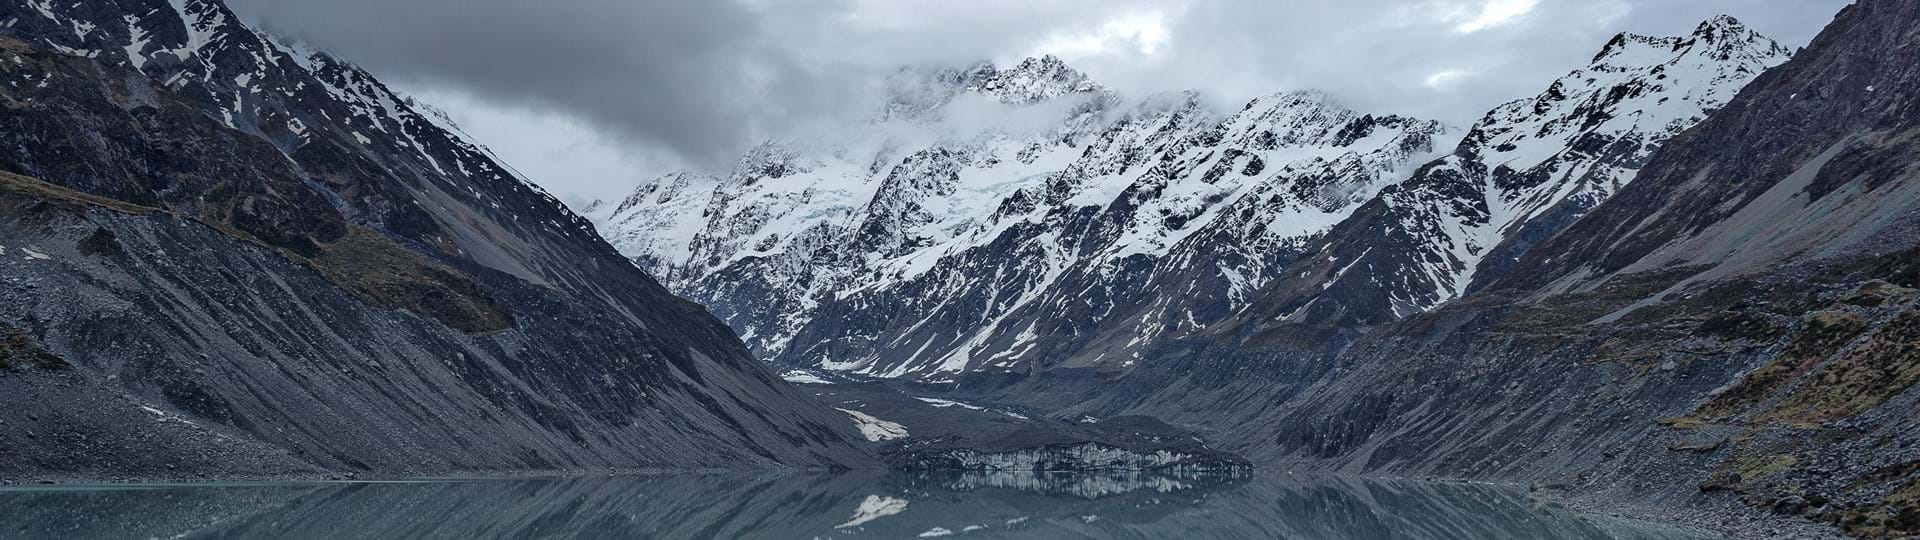 Man standing by body of water with mountains in the background